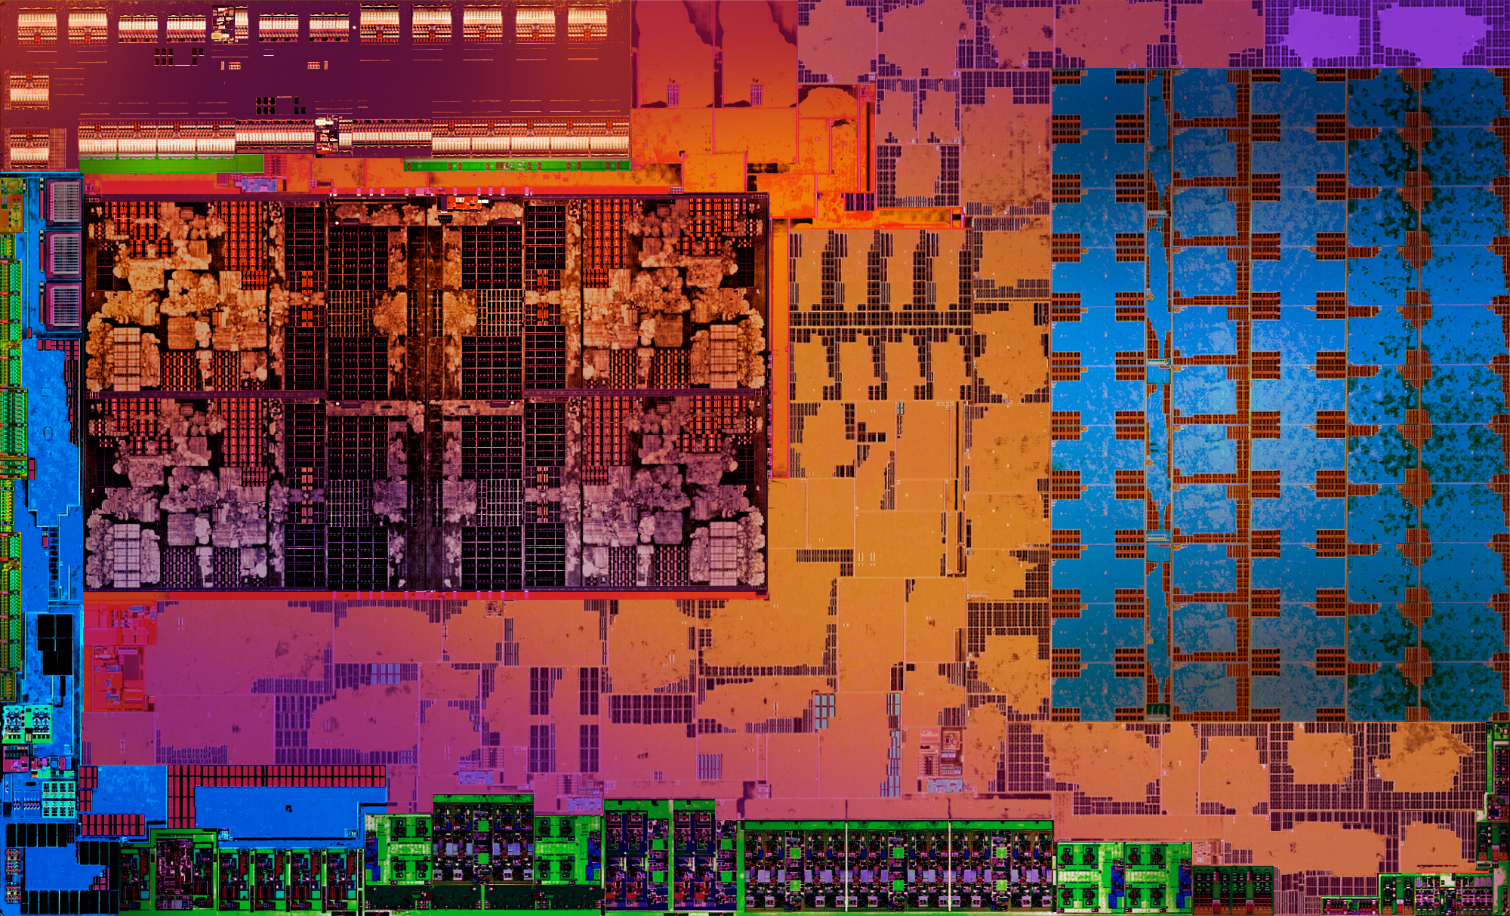 AMD Raven Ridge die.